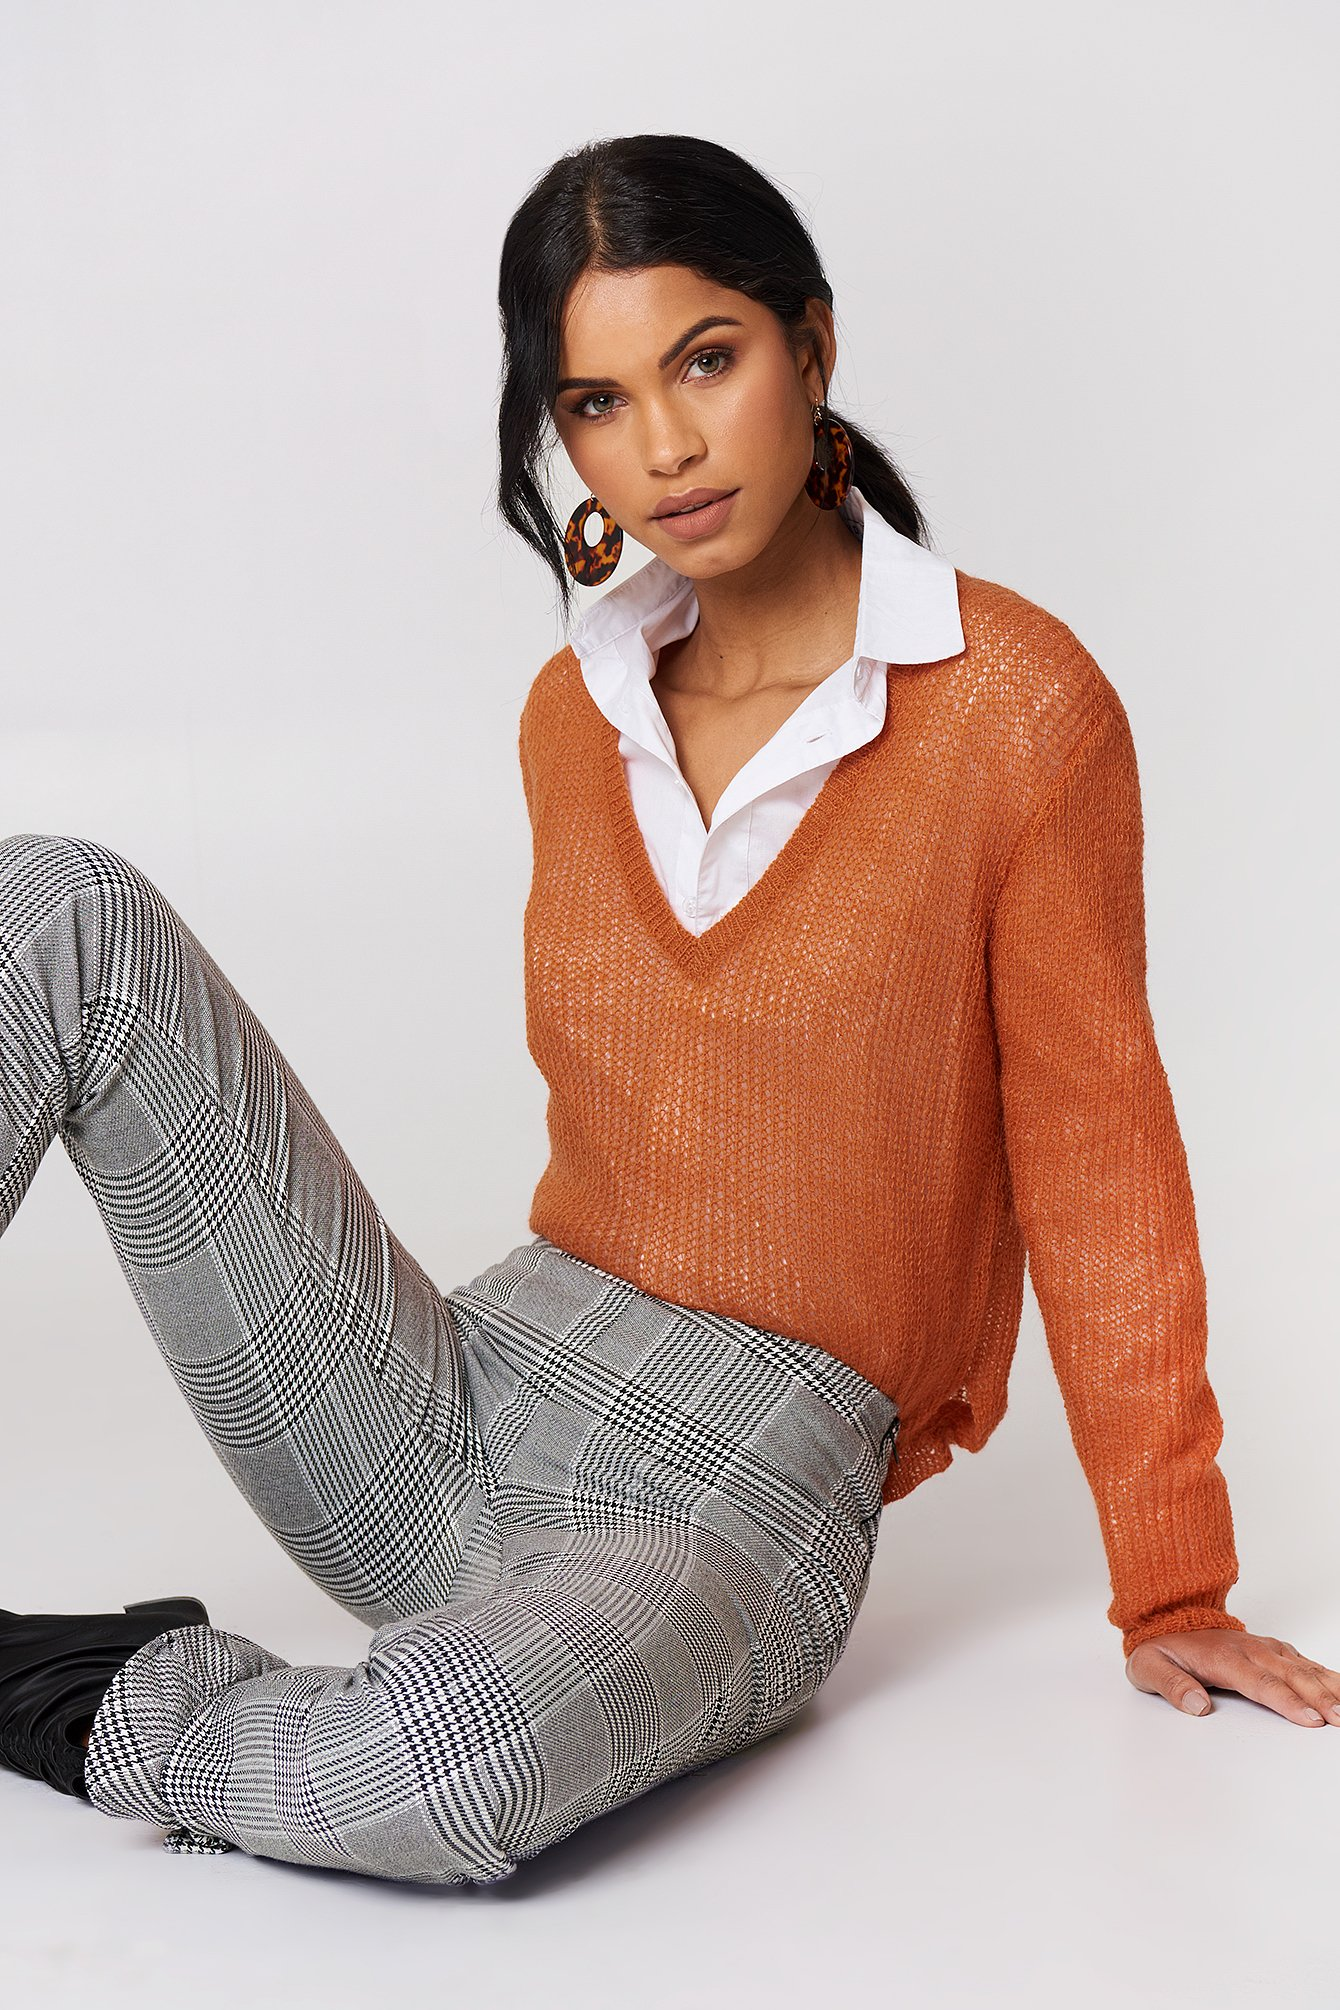 MOVES NILLY JUMPER - ORANGE, COPPER